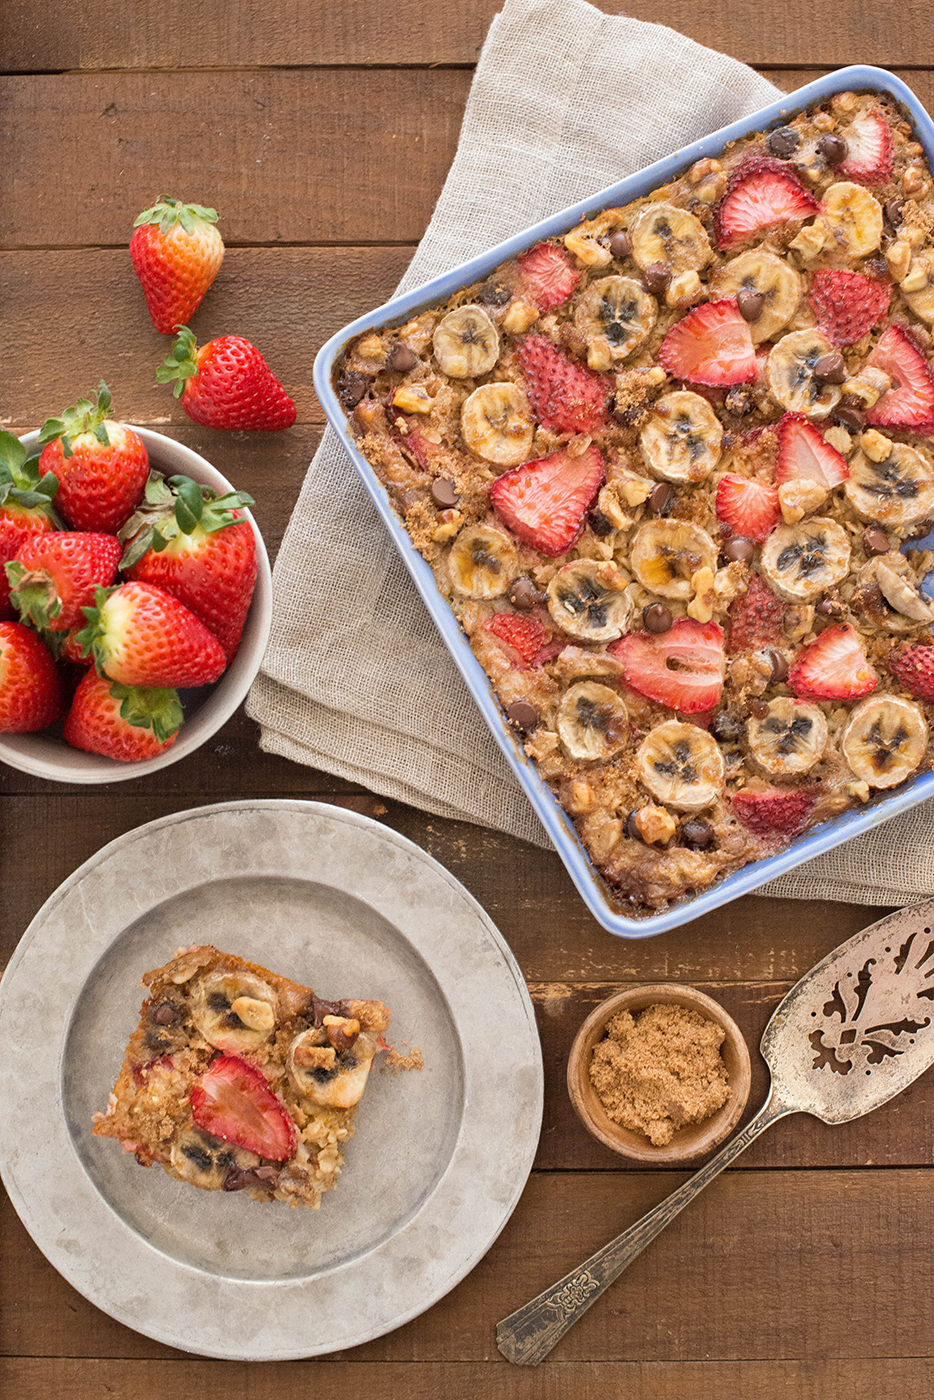 Oatmeal Bake with Strawberries and Bananas